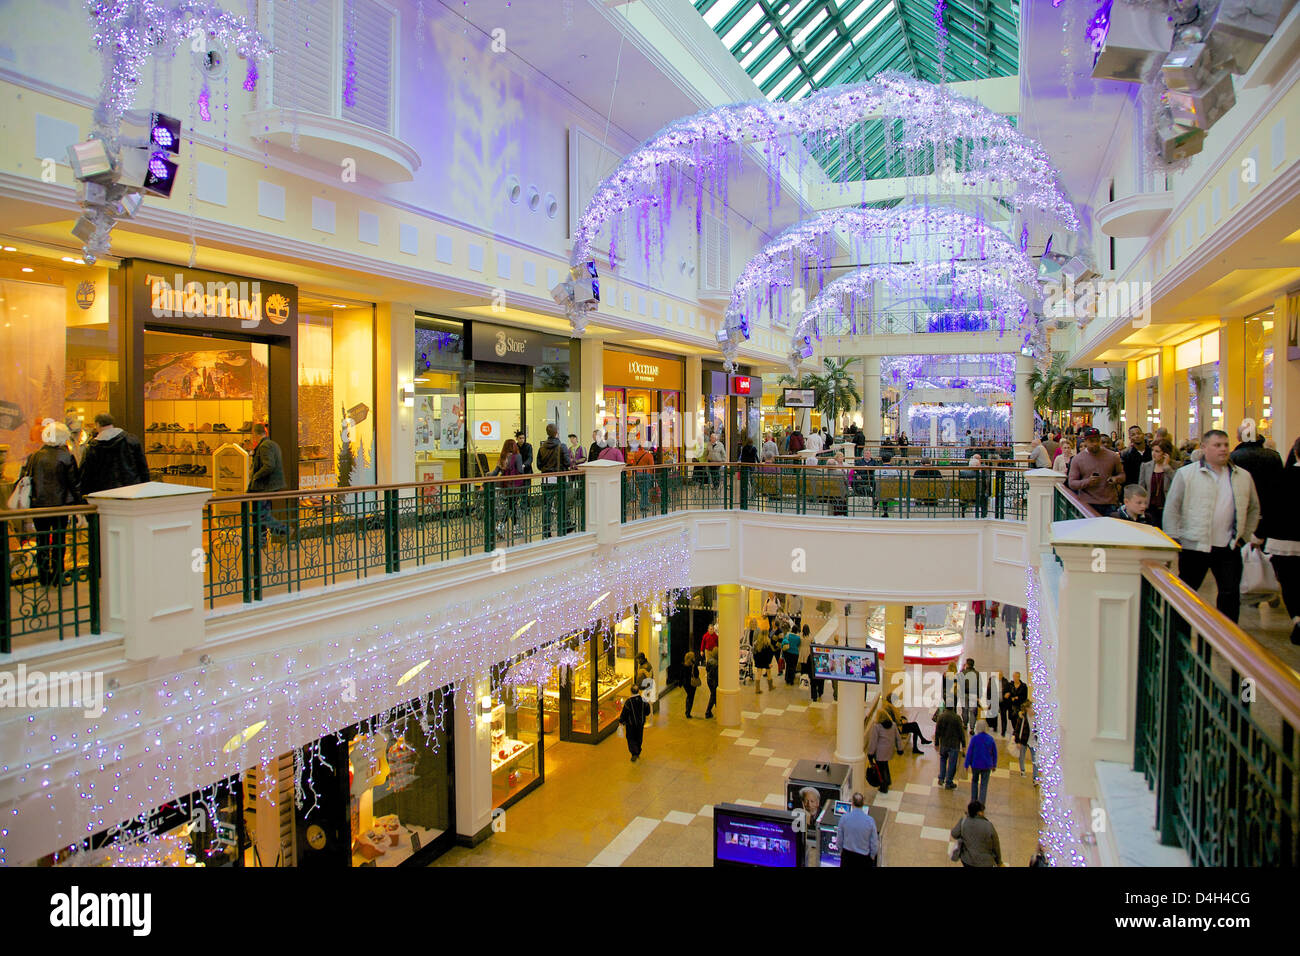 Interior of Meadowhall Shopping Centre at Christmas, Sheffield, South Yorkshire, Yorkshire, England, UK - Stock Image